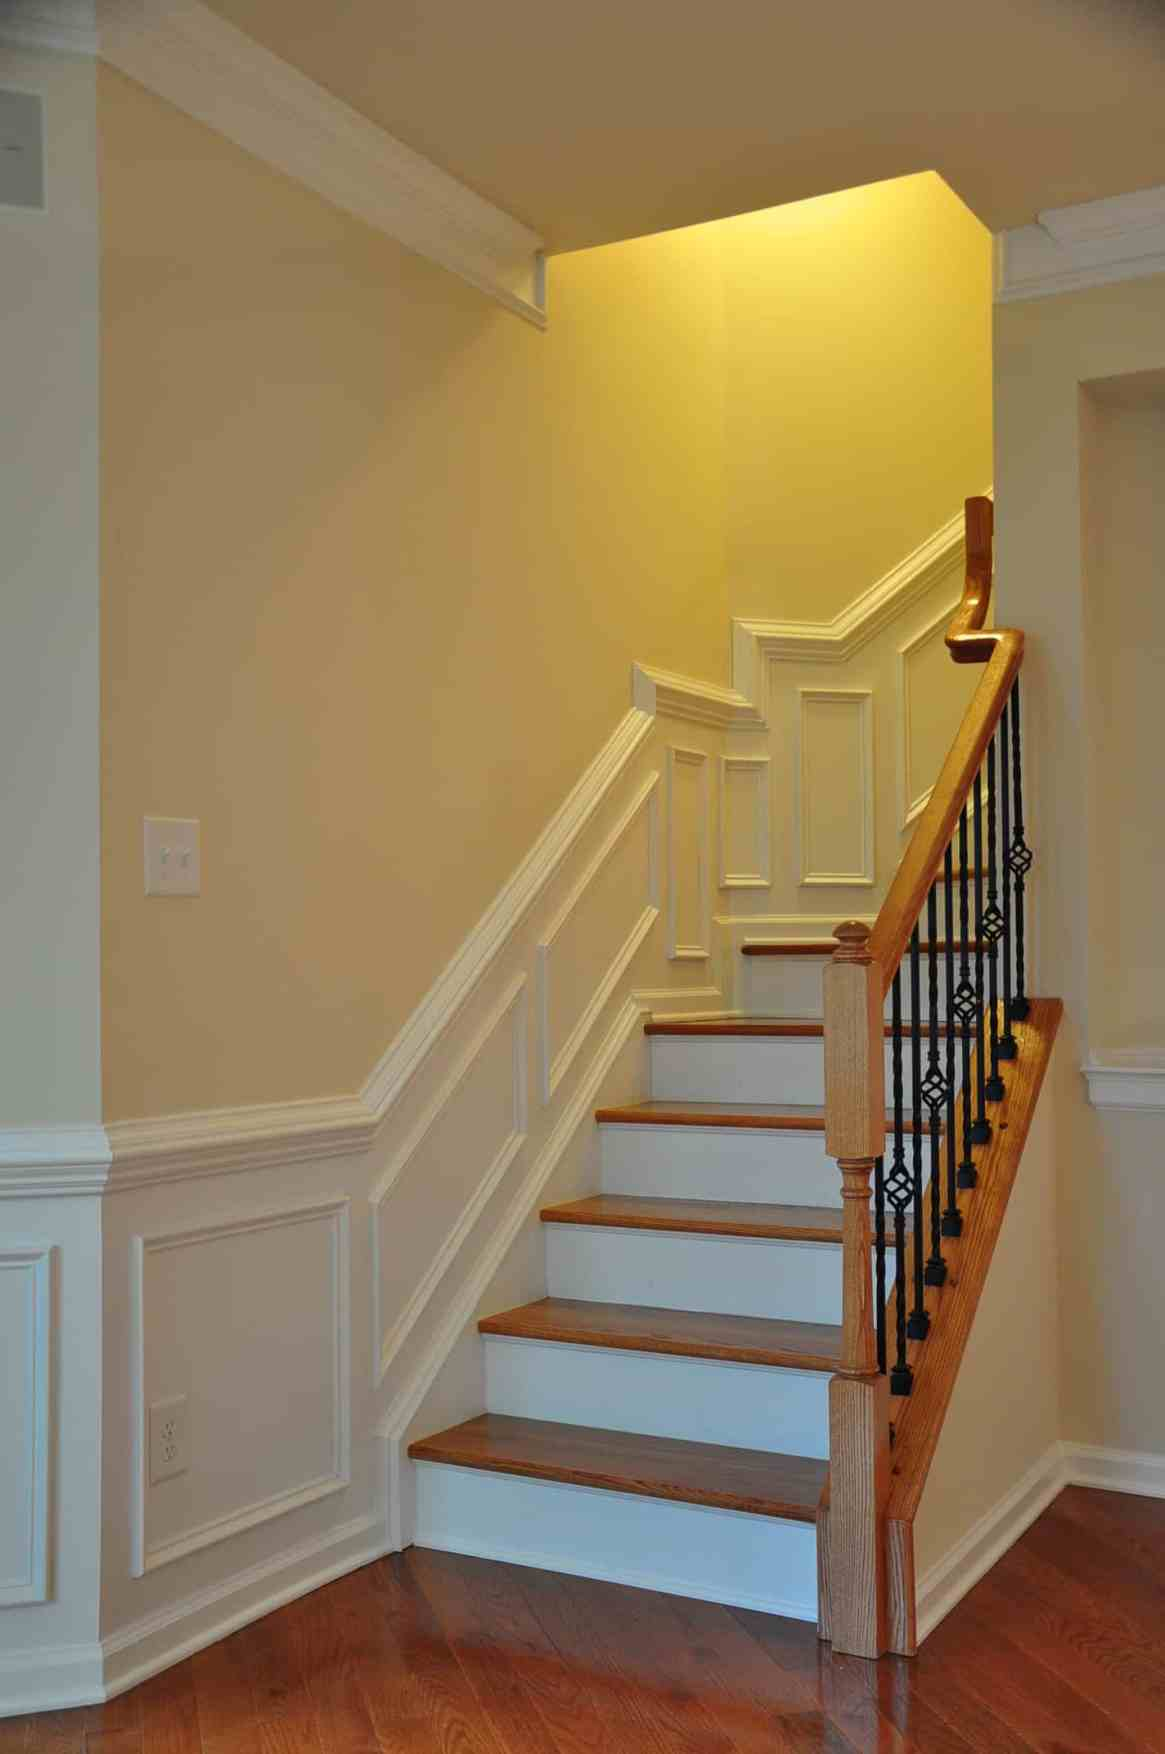 Carpenters install wainscoting in Richmond Va title=Wainscoting installed near Short Pump, Va